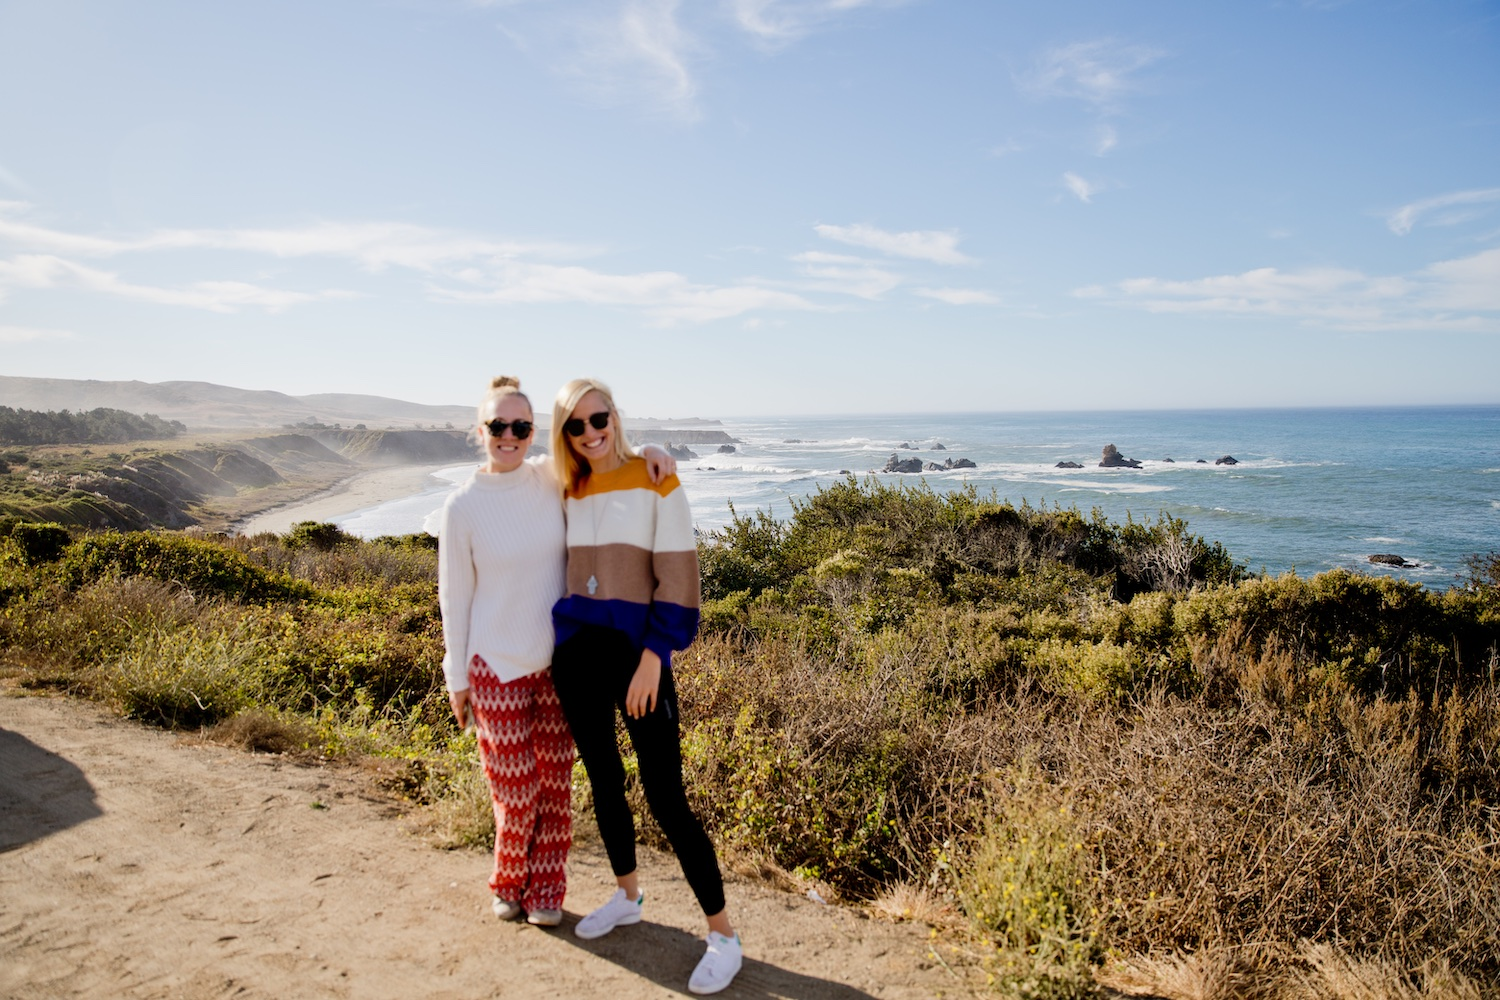 Highway 1 Route Roadtrip 17-Mile Drive Hearst Castle | http://chicchoolee.com